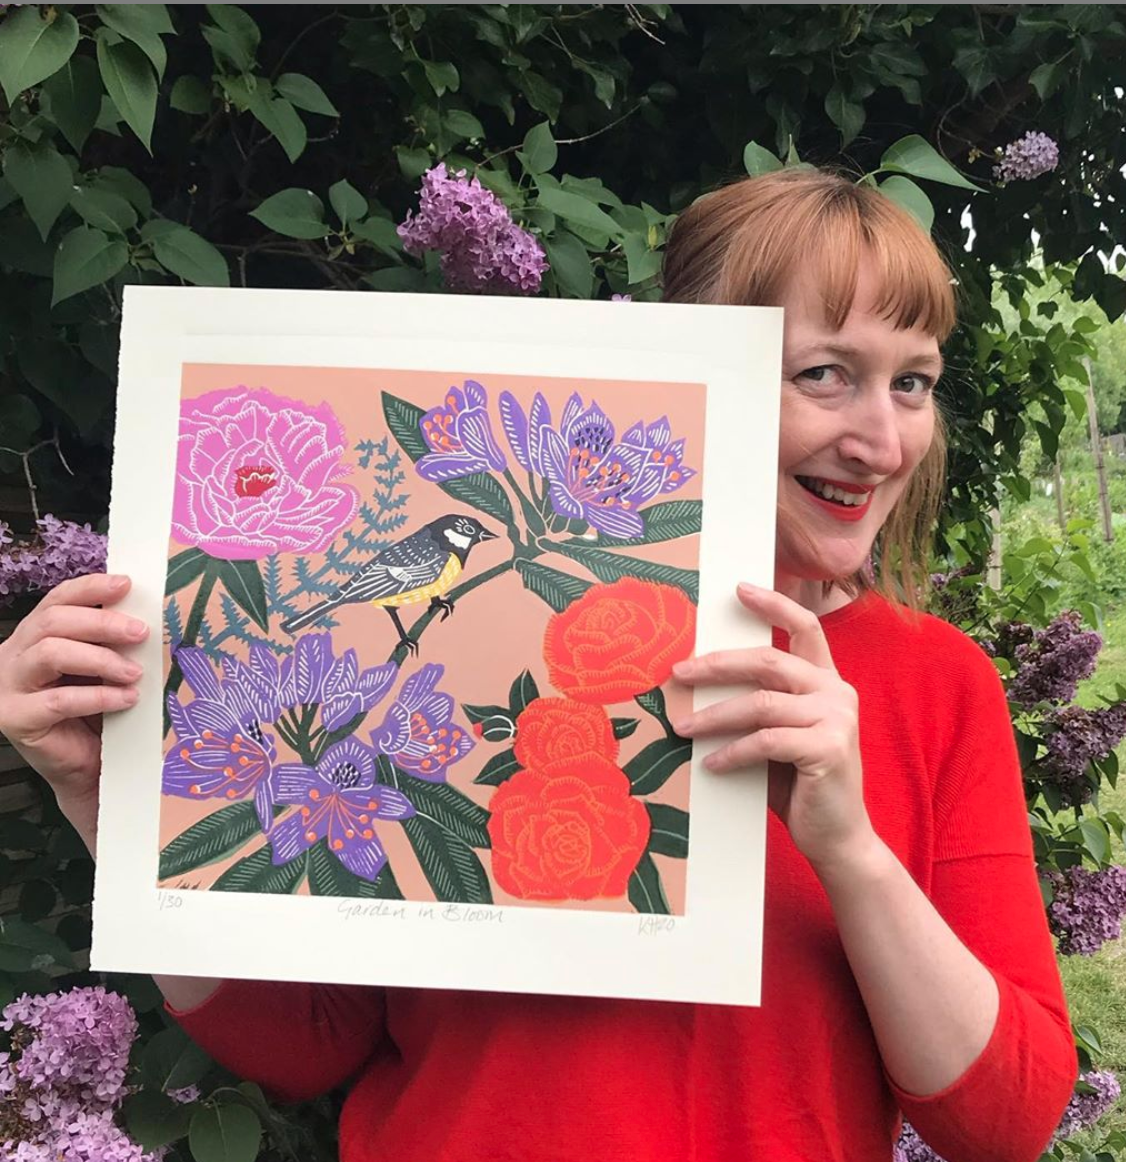 Above: Printmaker Kate Heiss with her art that appears in The Art File's Nature Trail collection.